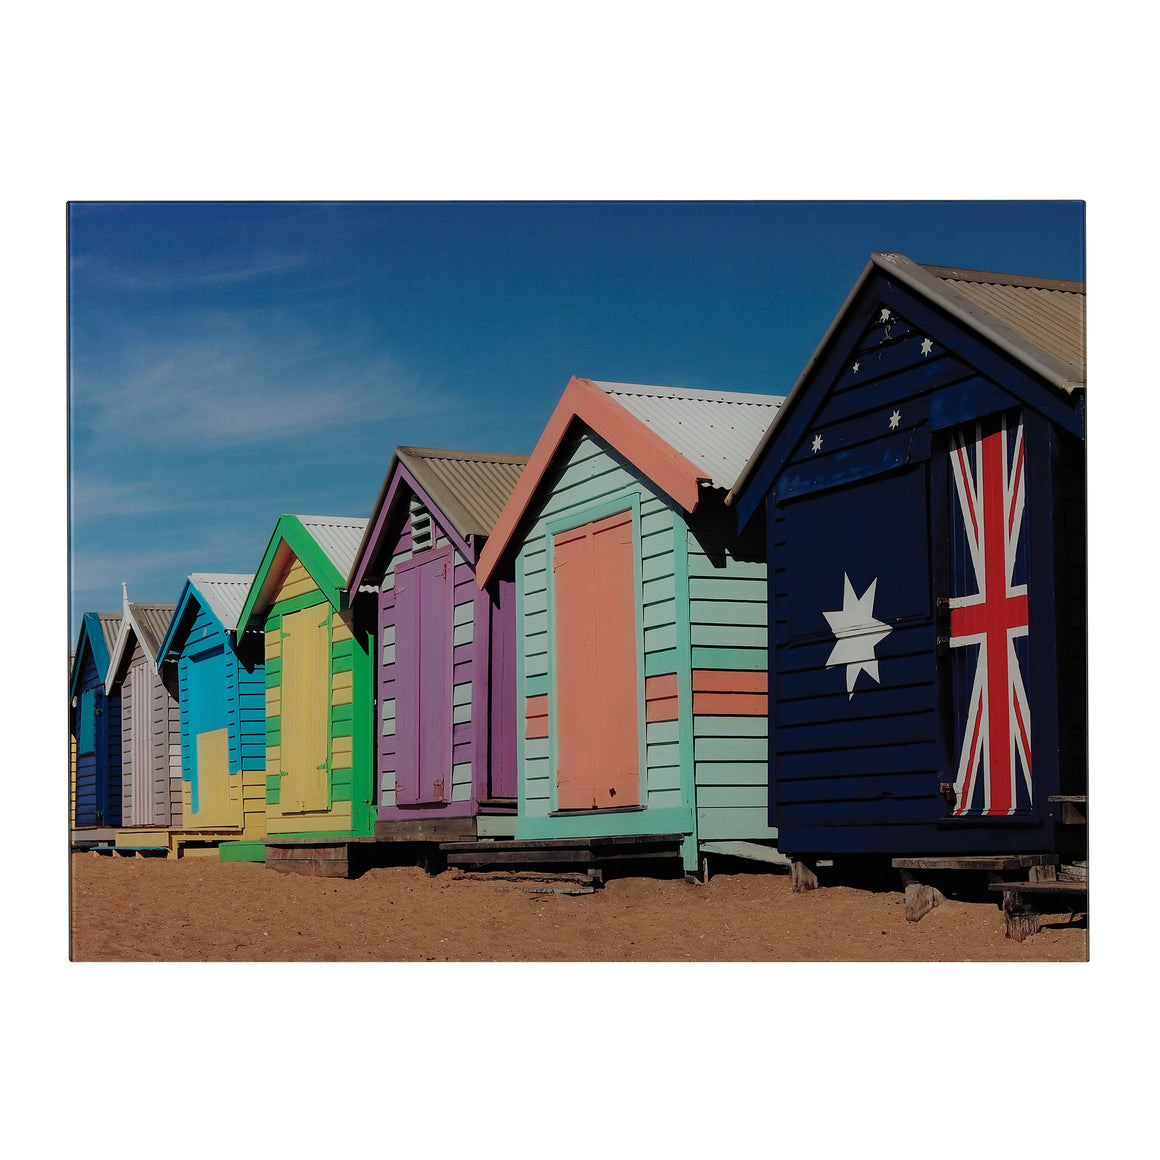 Beach Hut-Beach Hut Image Printed On Glass by Sterling